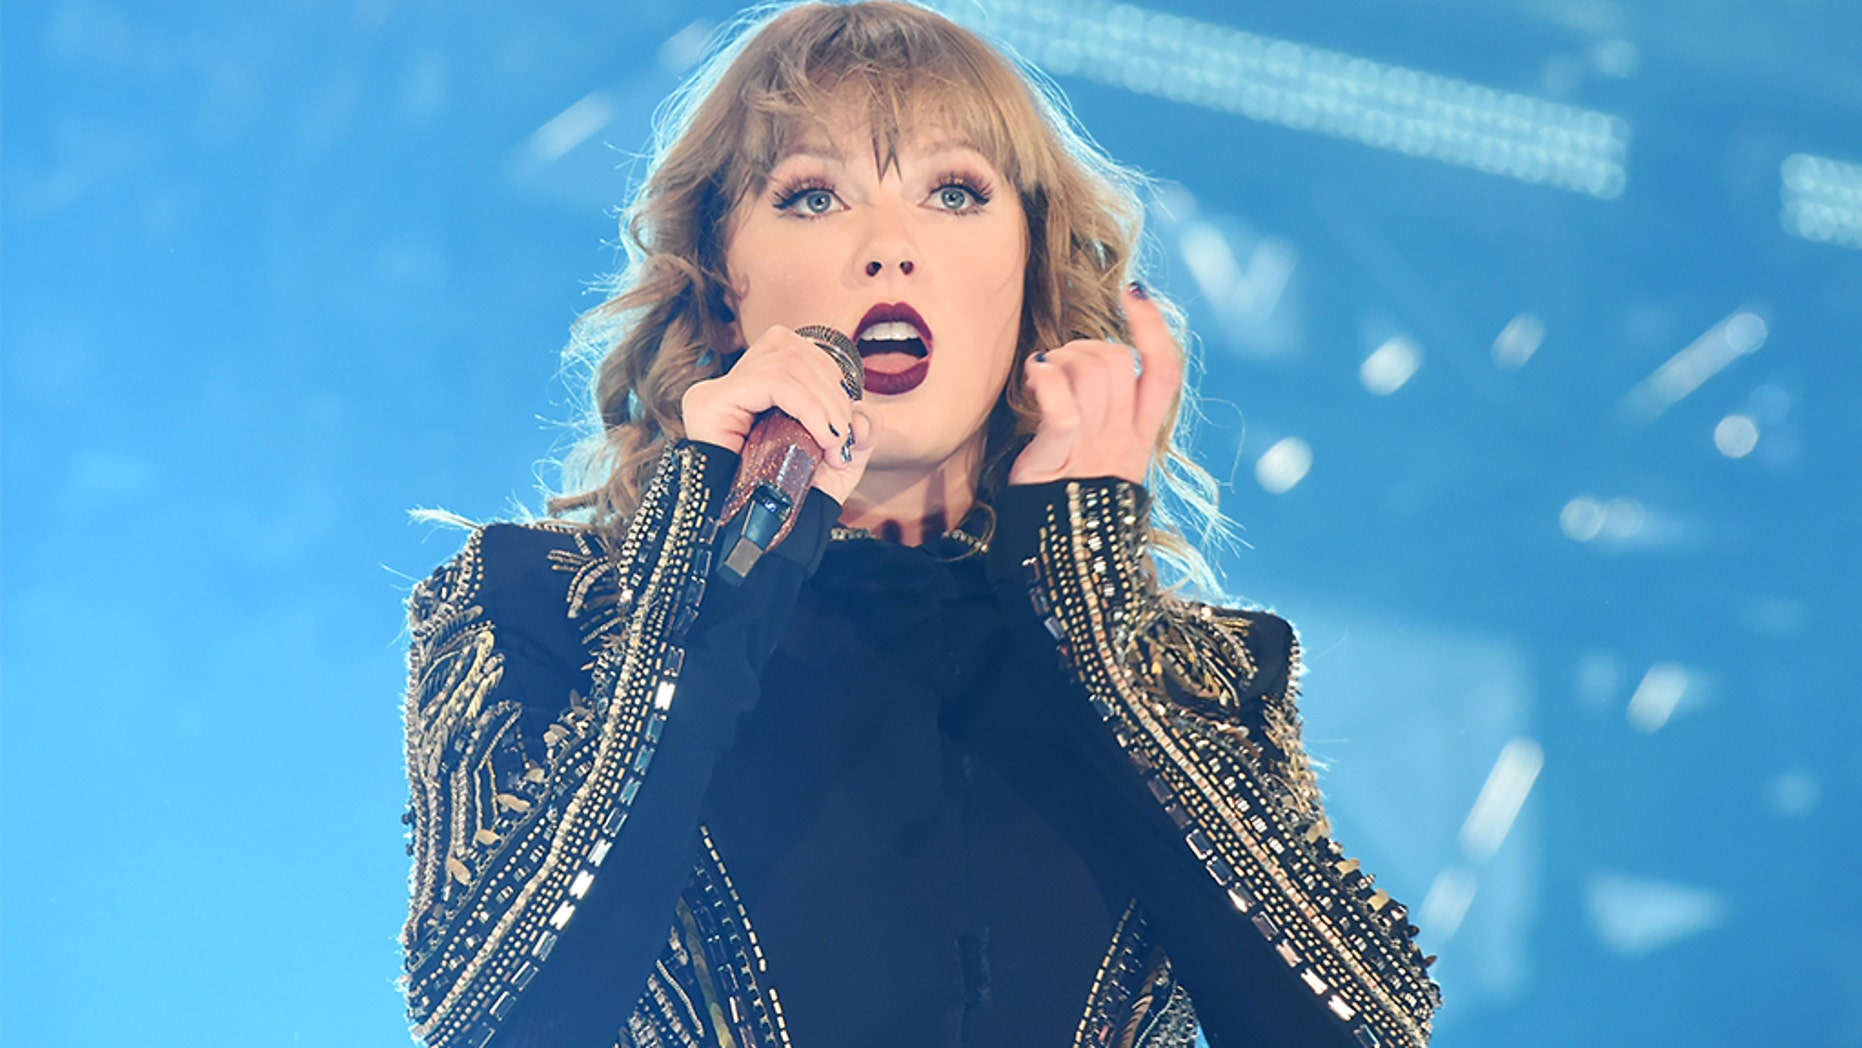 Taylor Swift has become Big Brother